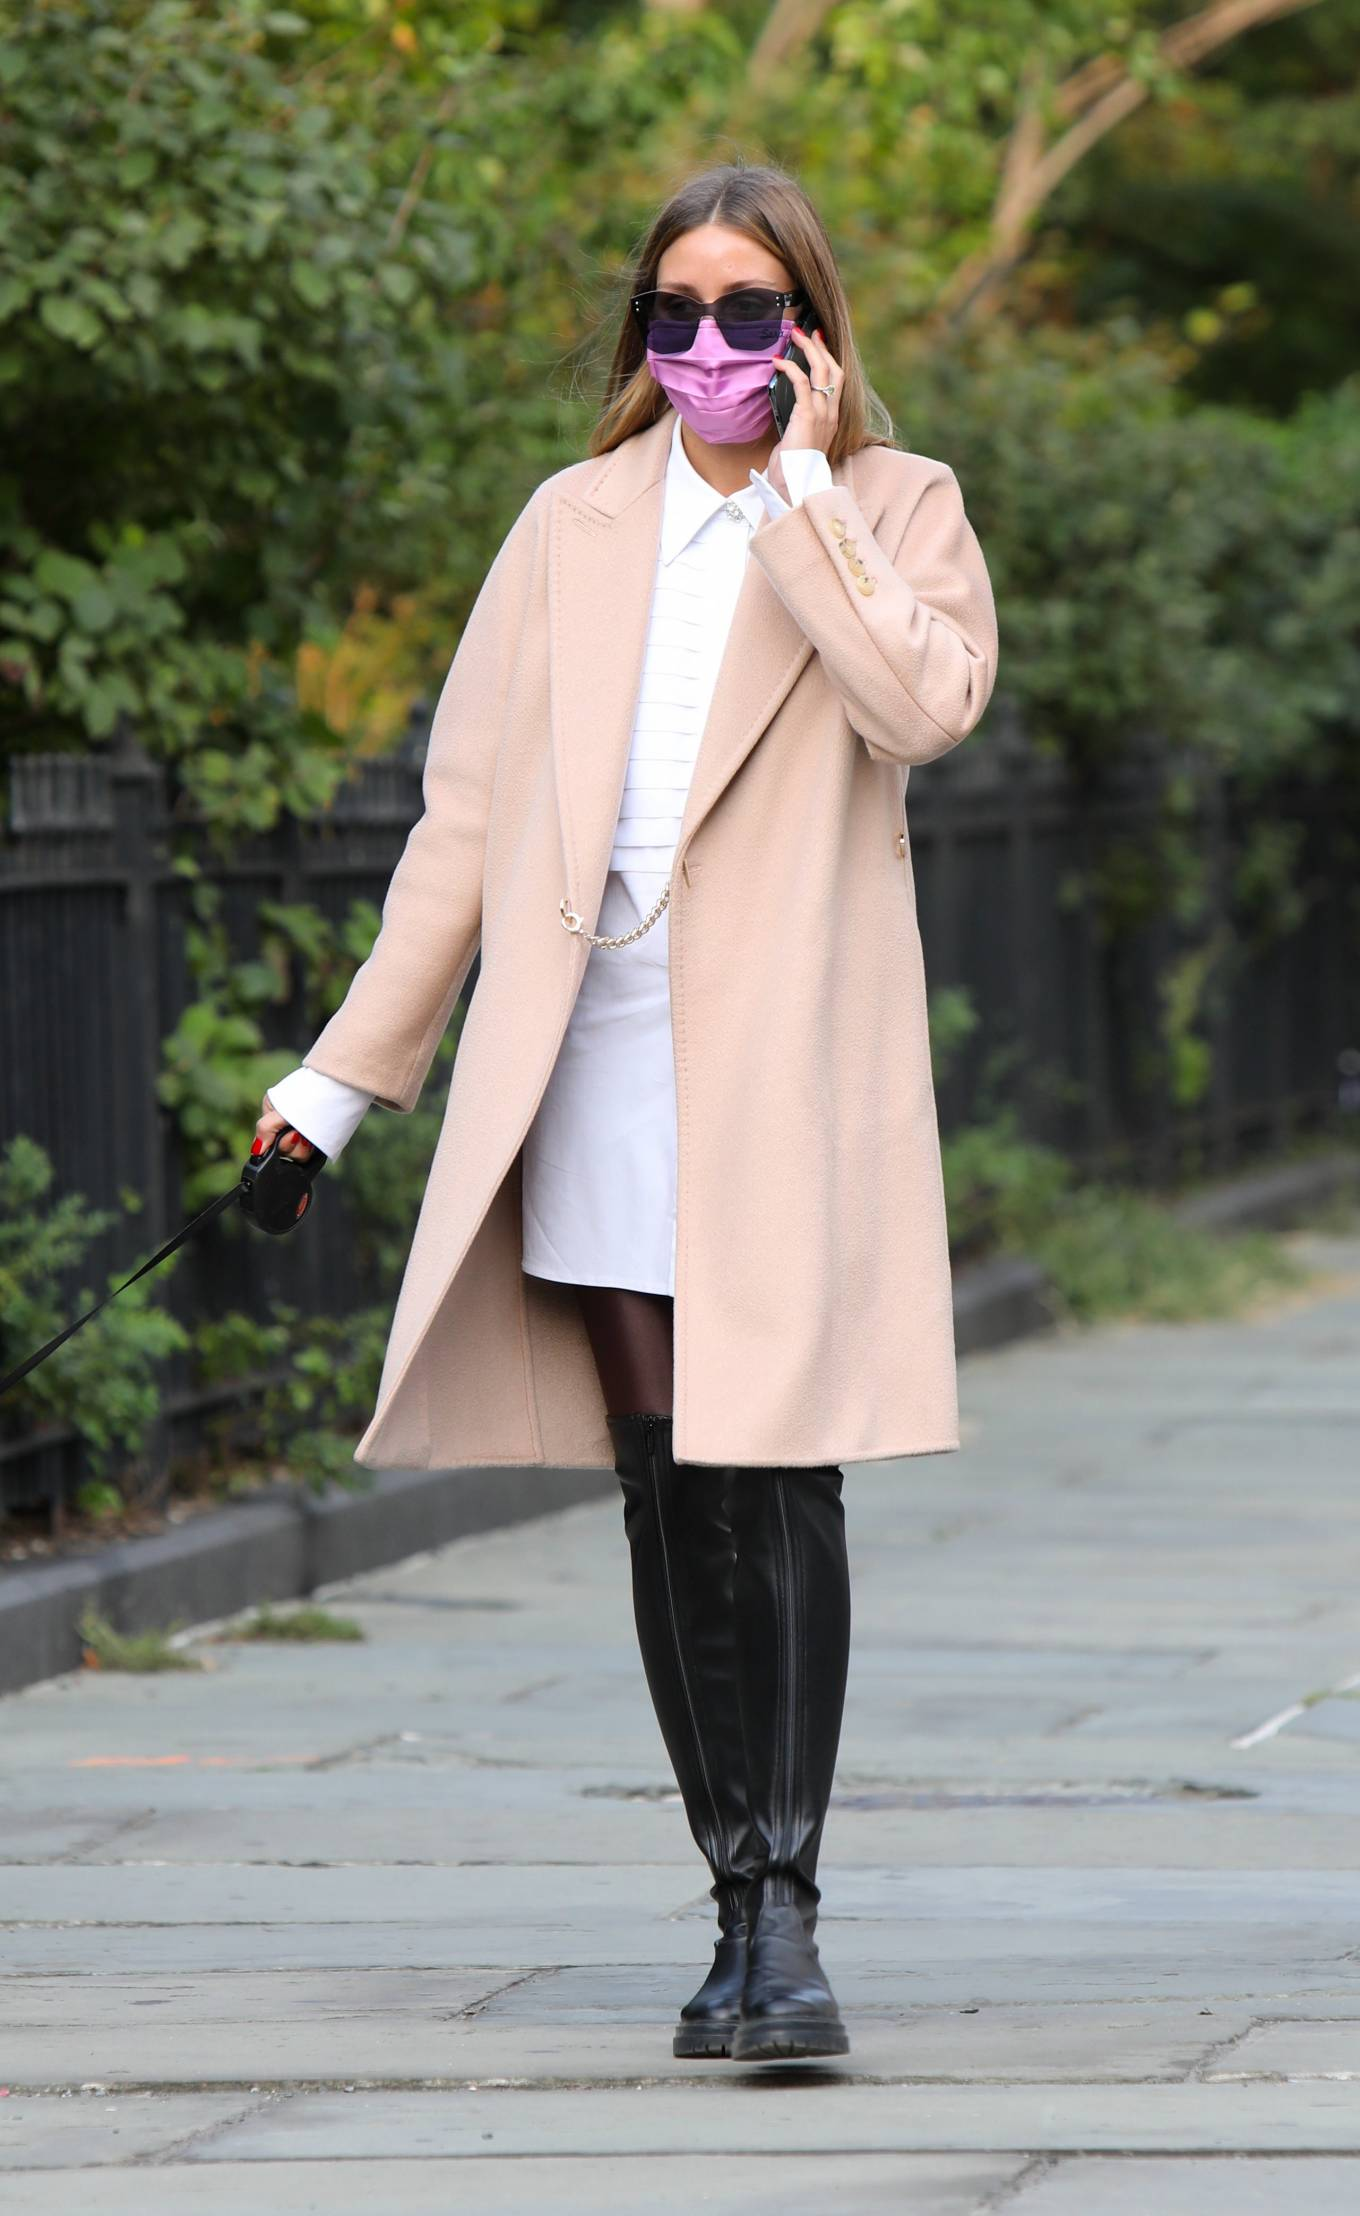 Olivia Palermo 2020 : Olivia Palermo – Wearing a white short dress under a coat while out for a walk in Manhattan-15